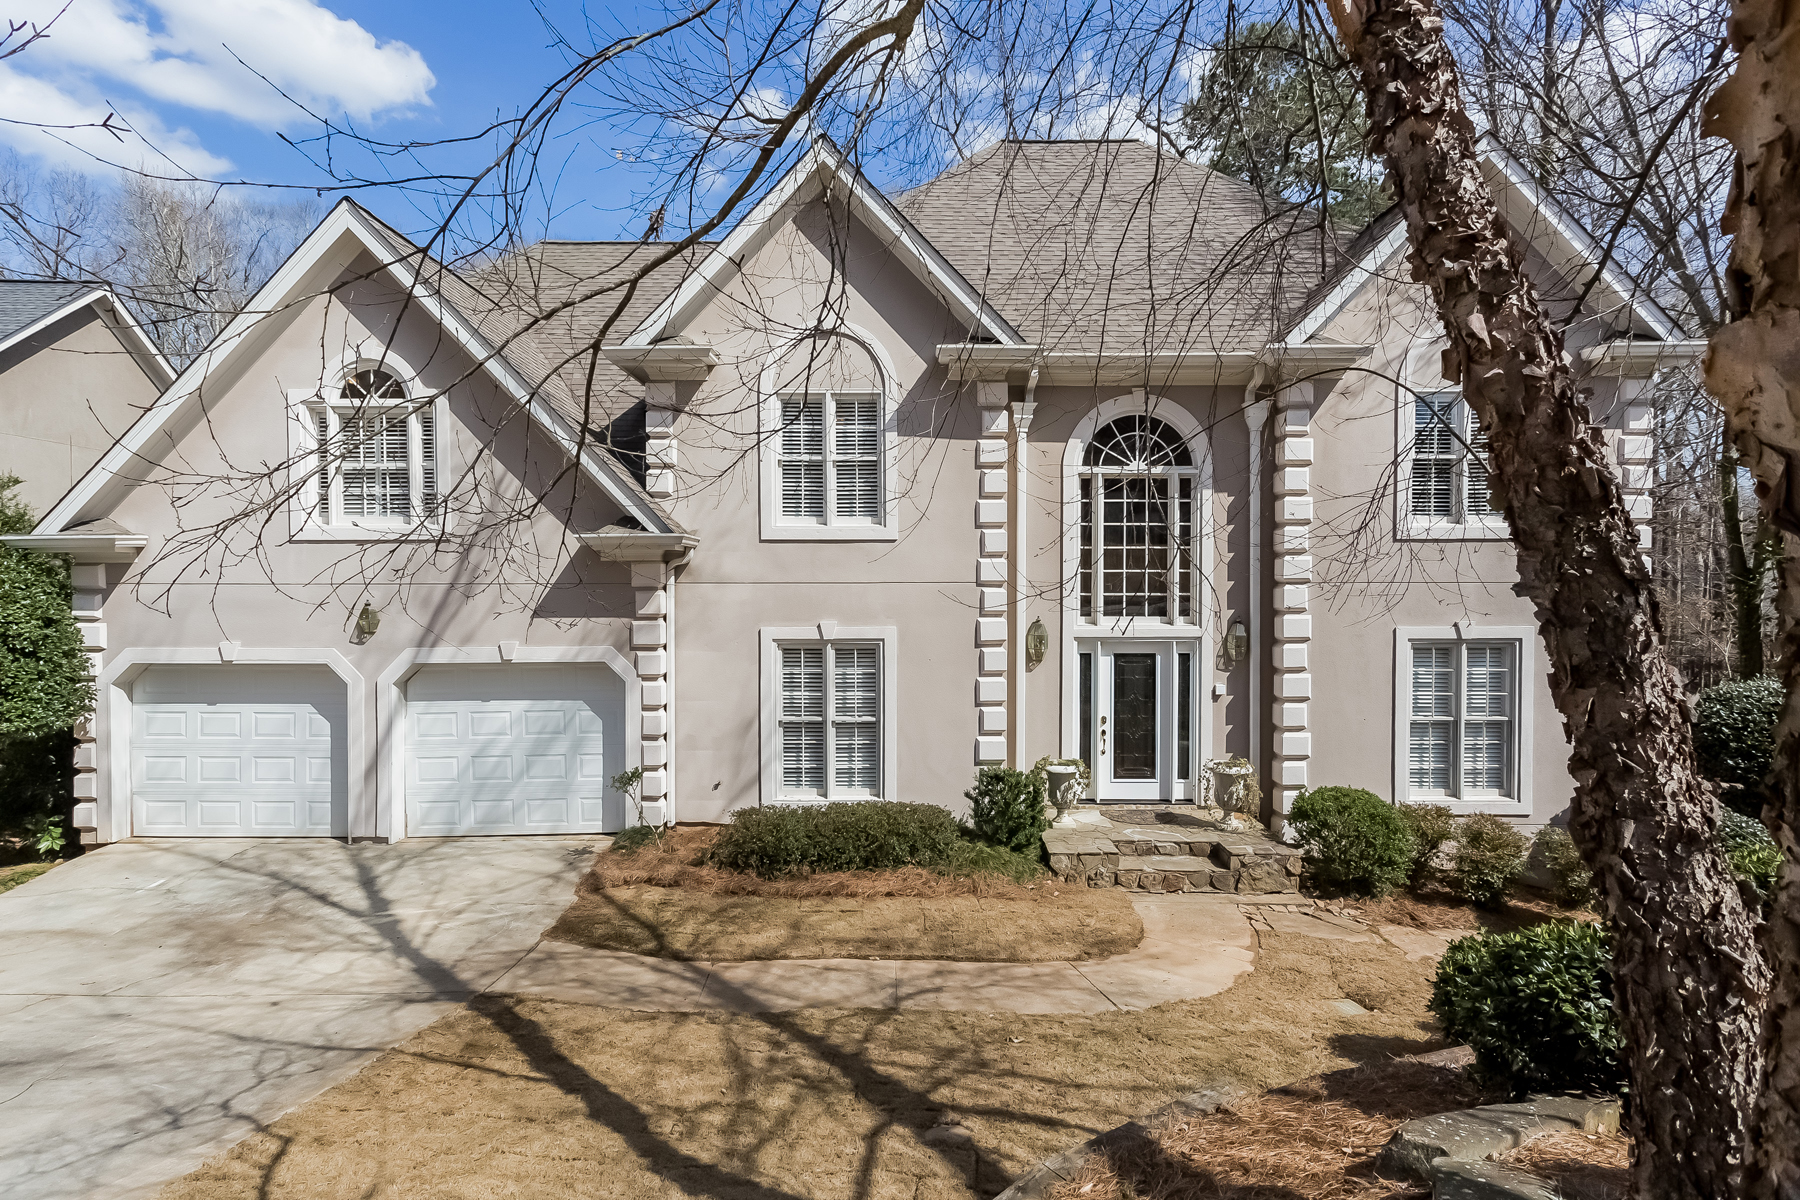 Moradia para Arrendamento às Updated Home In Desirable Horseshoe Bend 155 Willow Brook Drive Roswell, Geórgia 30076 Estados Unidos